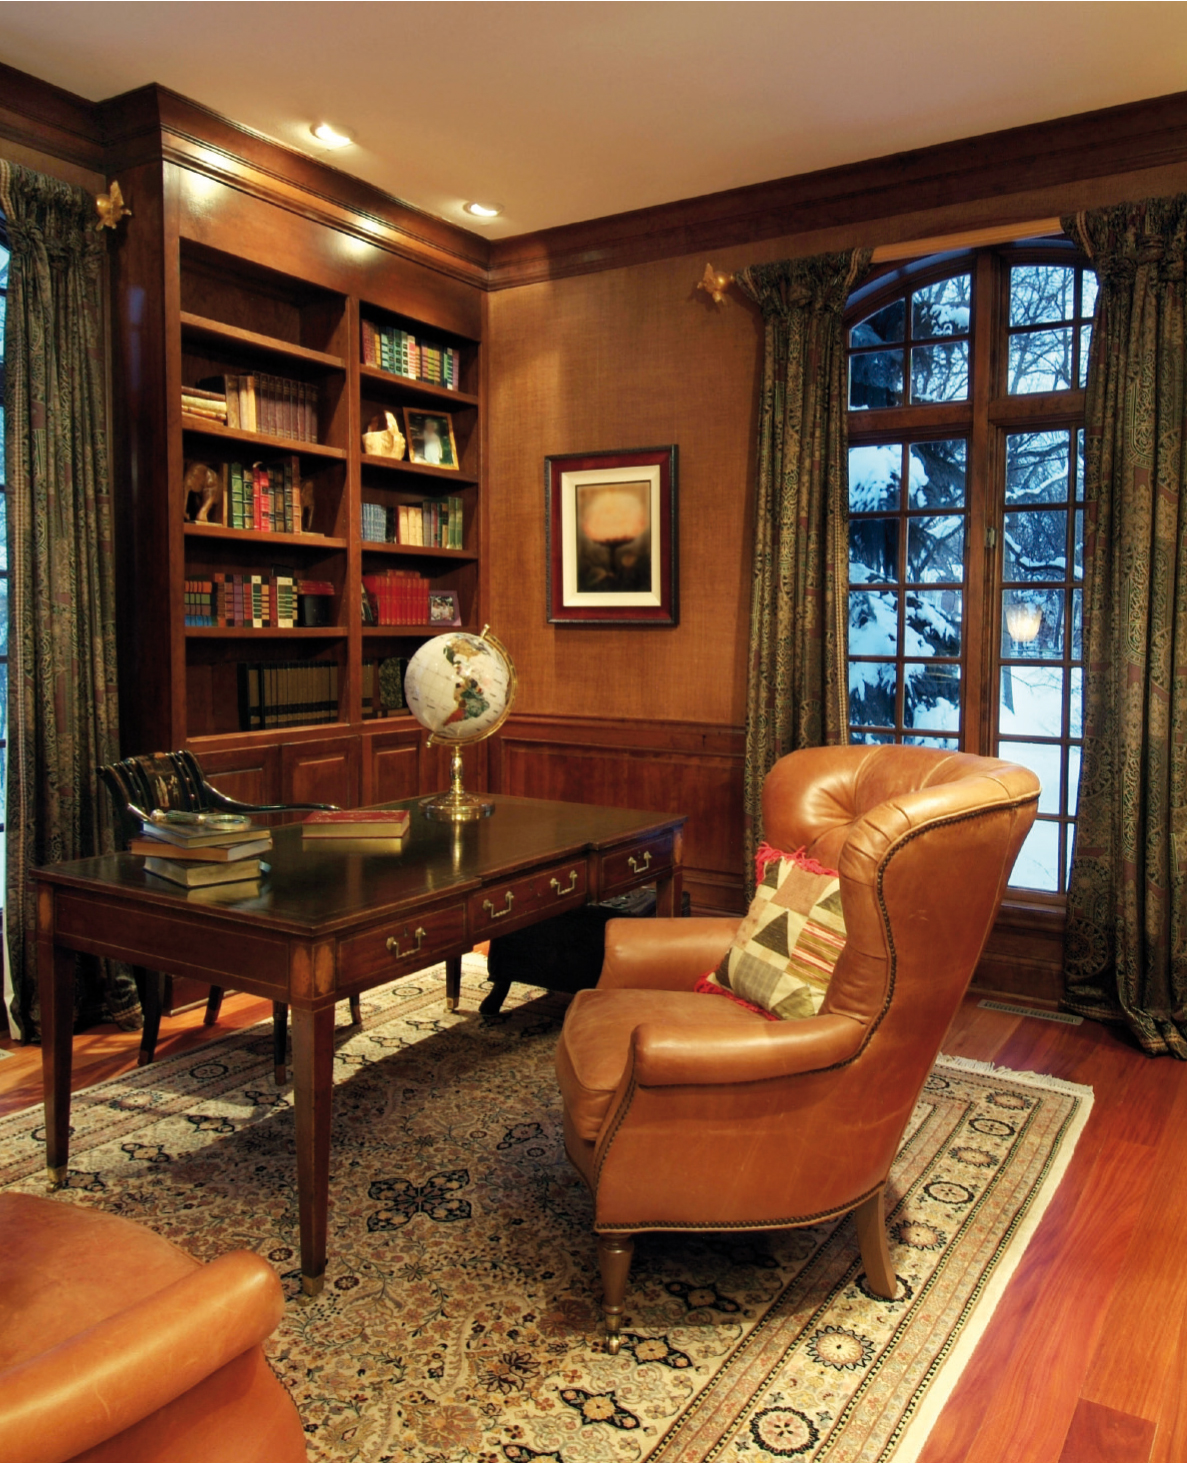 Home Study Design Ideas: The Gentleman's Room: Creating A Masculine Aesthetic